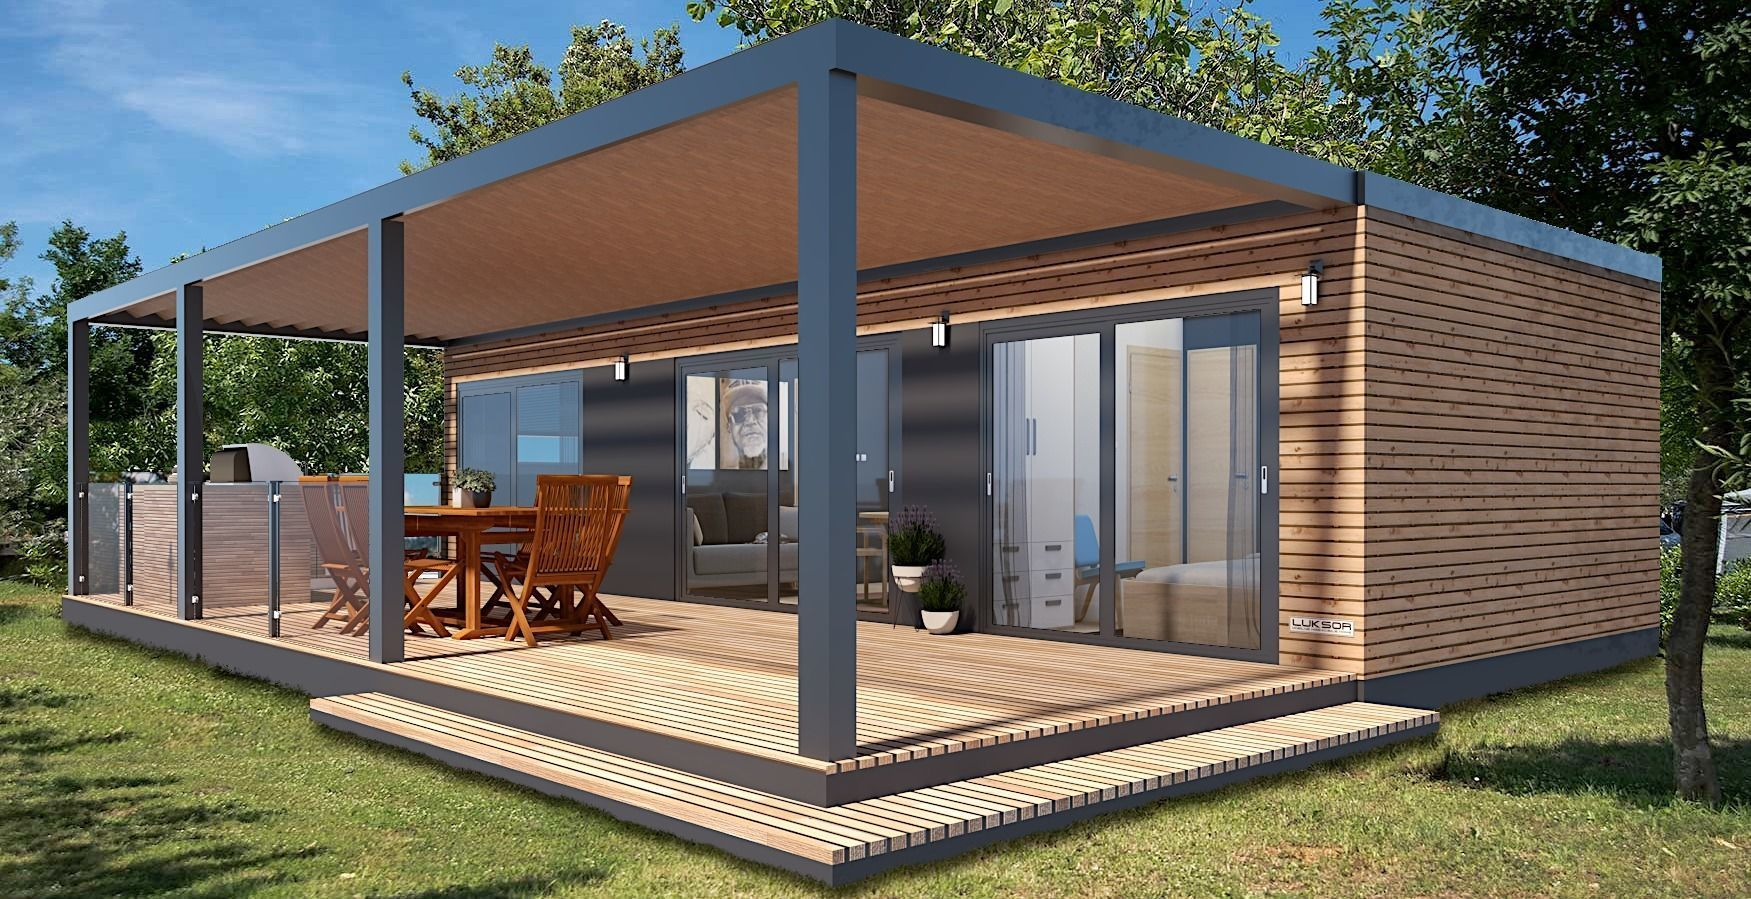 mobile home tiny house vacation house on 40m2 3dmodel